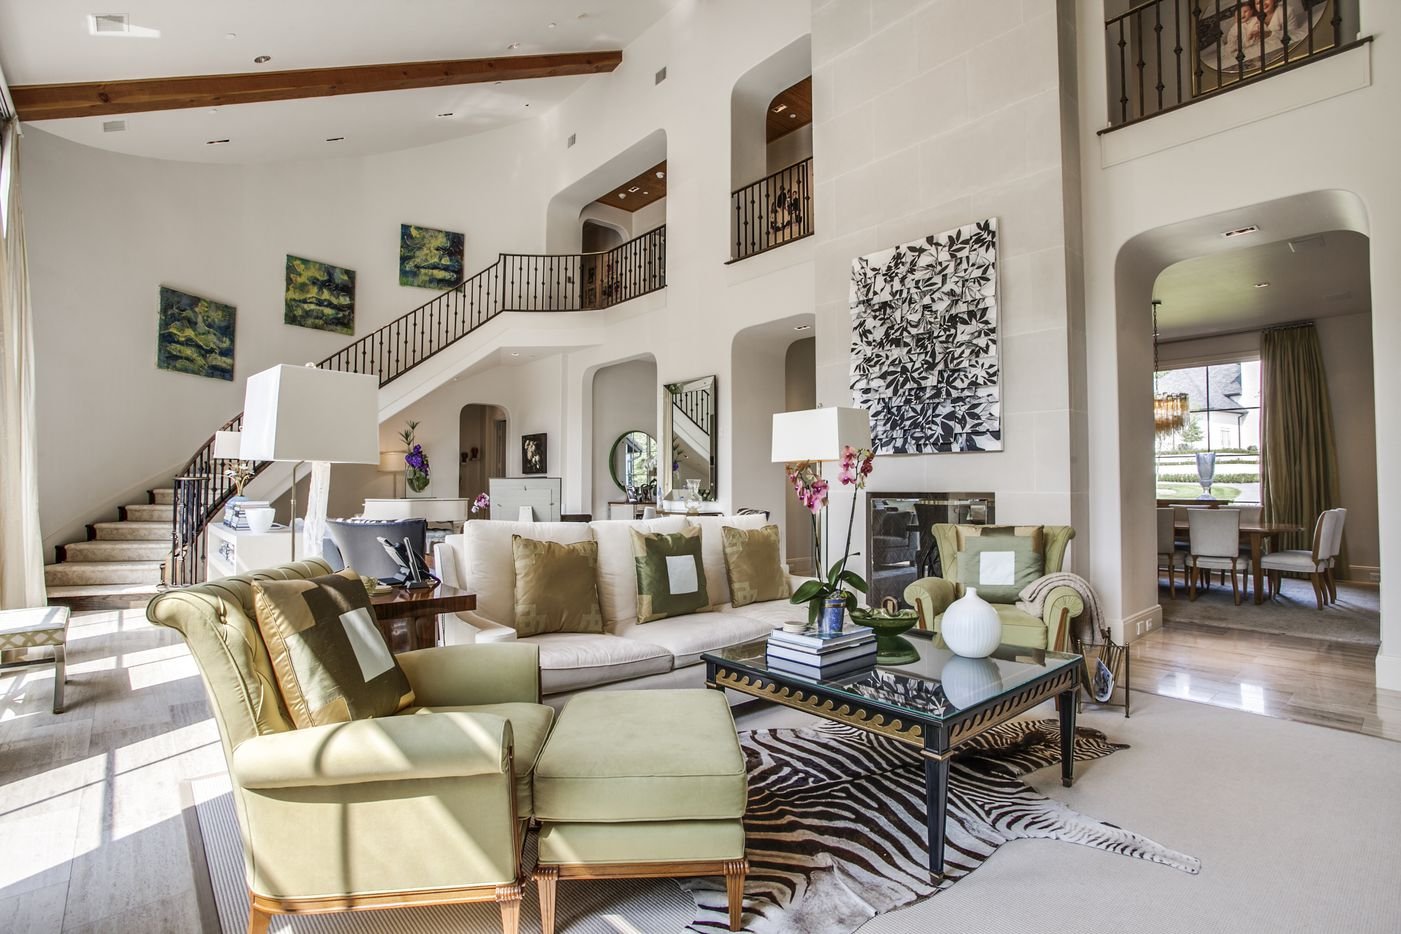 Take a look at the interior of the home at 25 Glen Abbey Drive in Dallas, TX.